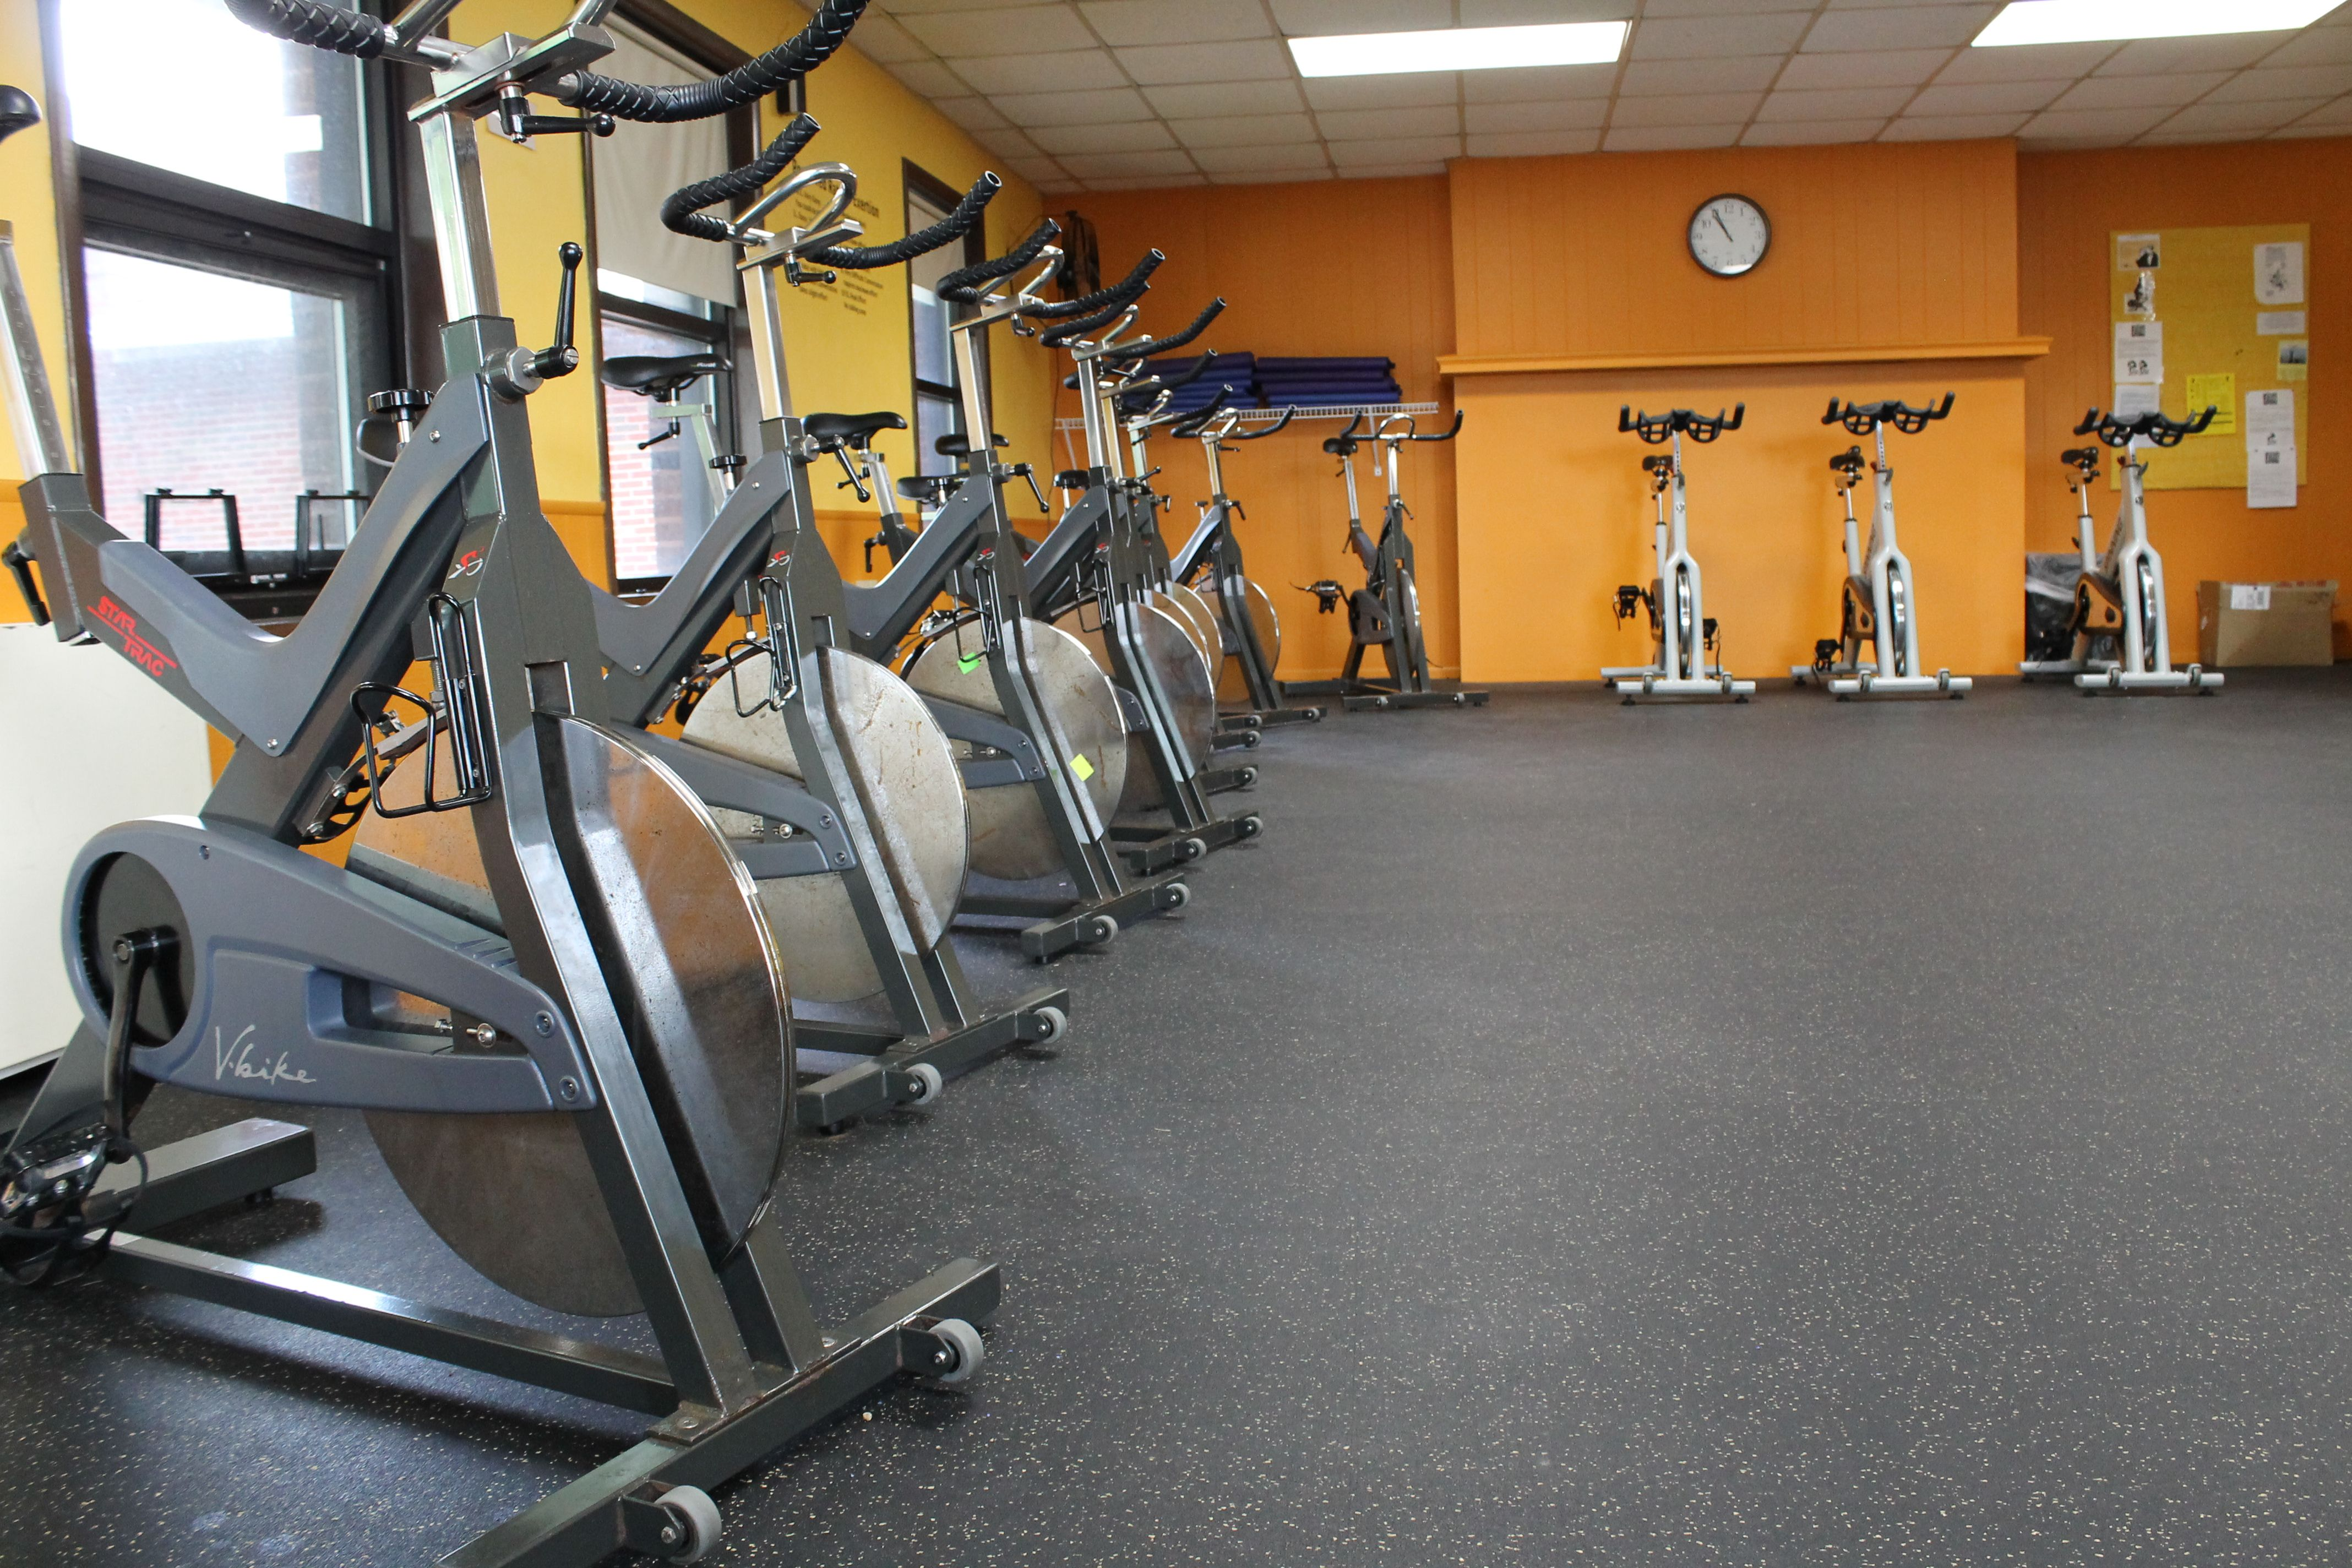 3 8 4 X25 In Stock Rubber Flooring Great In Any Fitness Center